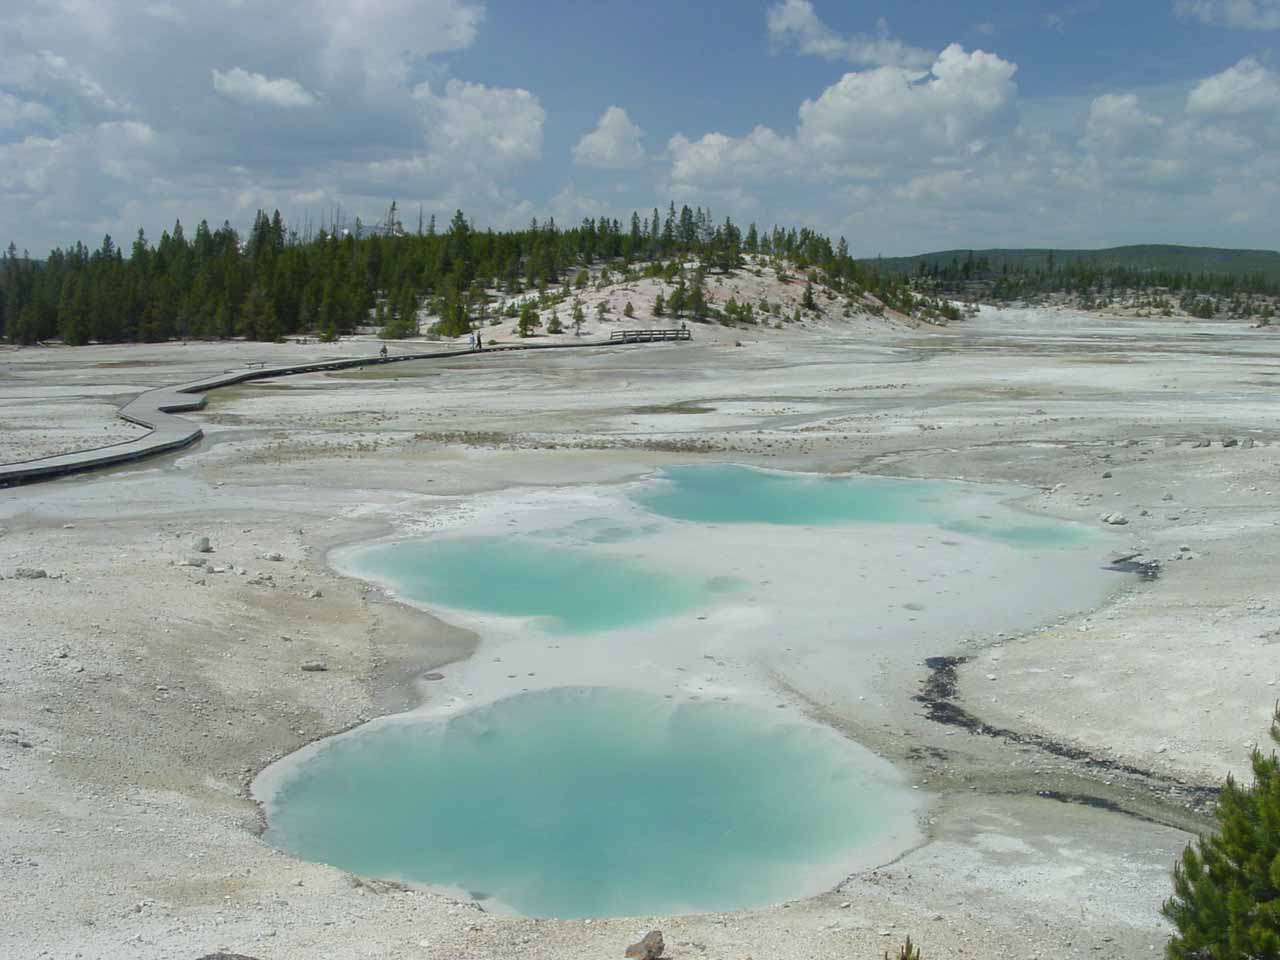 Nearby Gibbon Falls is the otherworldly and geothermically active Norris Geyser Basin.  I could see why this called this part the Porcelain Basin